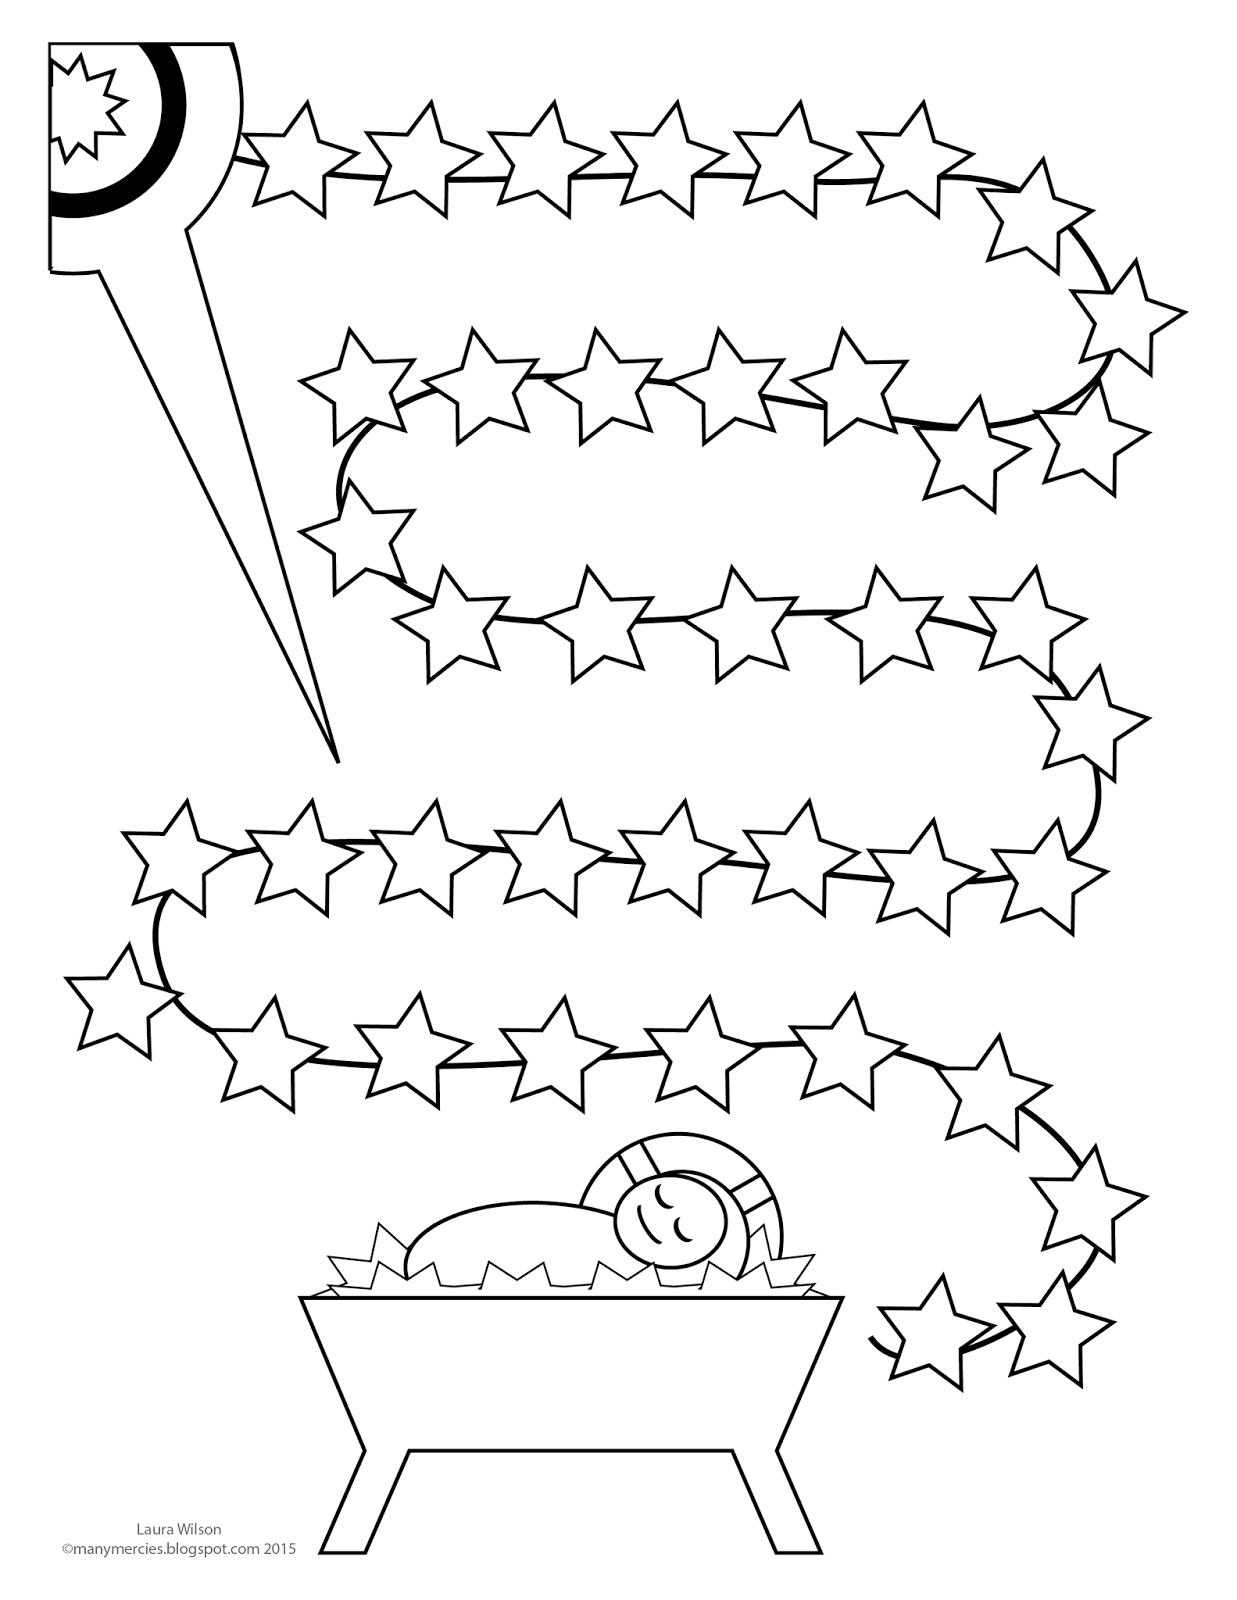 countdown to christmas coloring pages | we wilsons: Advent Countdown Printable